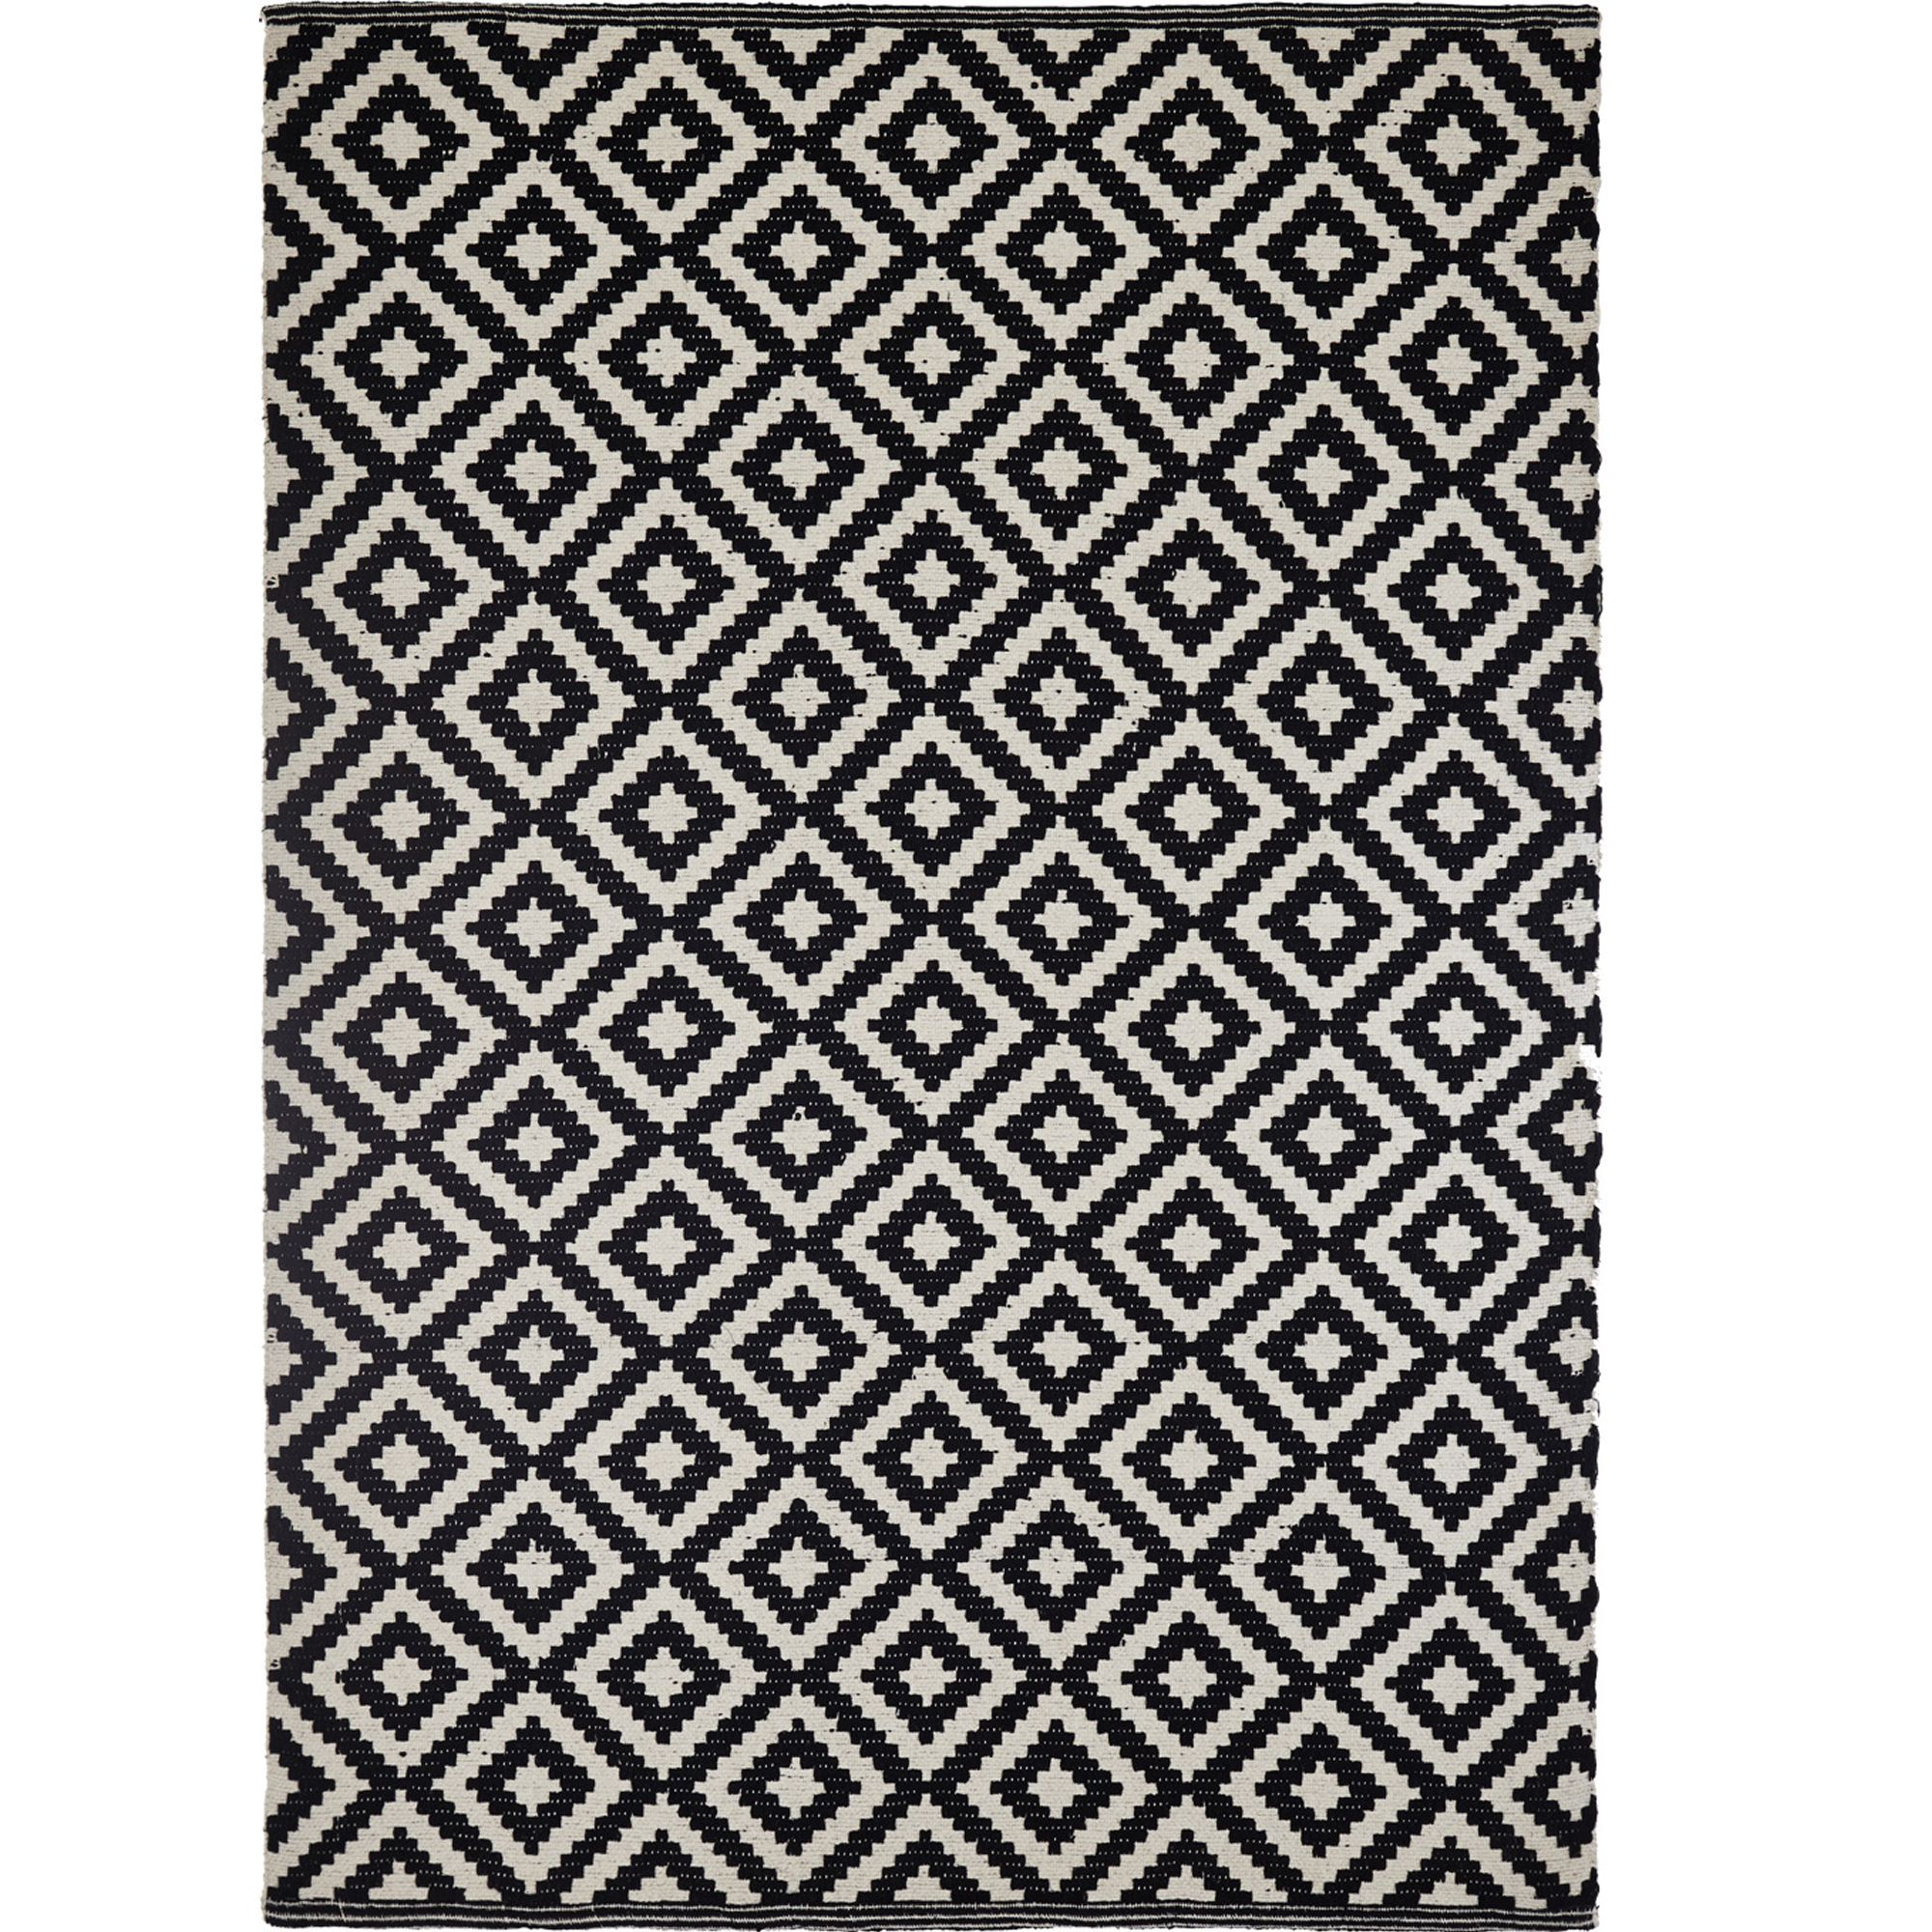 white garden diamond aztec rugs rug black and in outdoor geometic mat